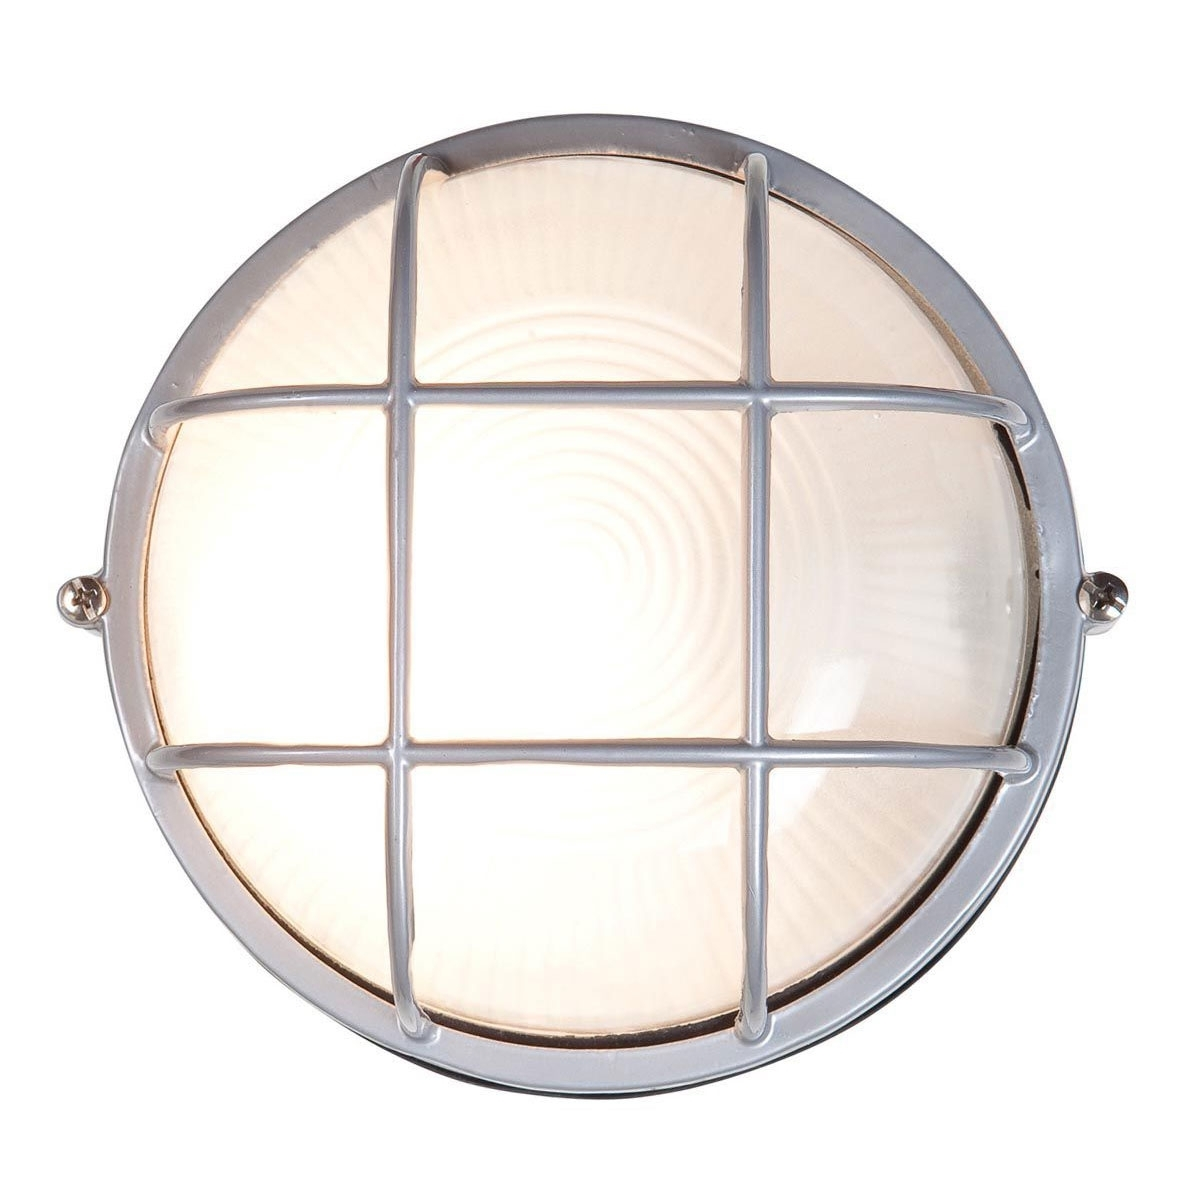 Widely Used Round Outdoor Bulkhead Wall / Ceiling Lightaccess (View 20 of 20)